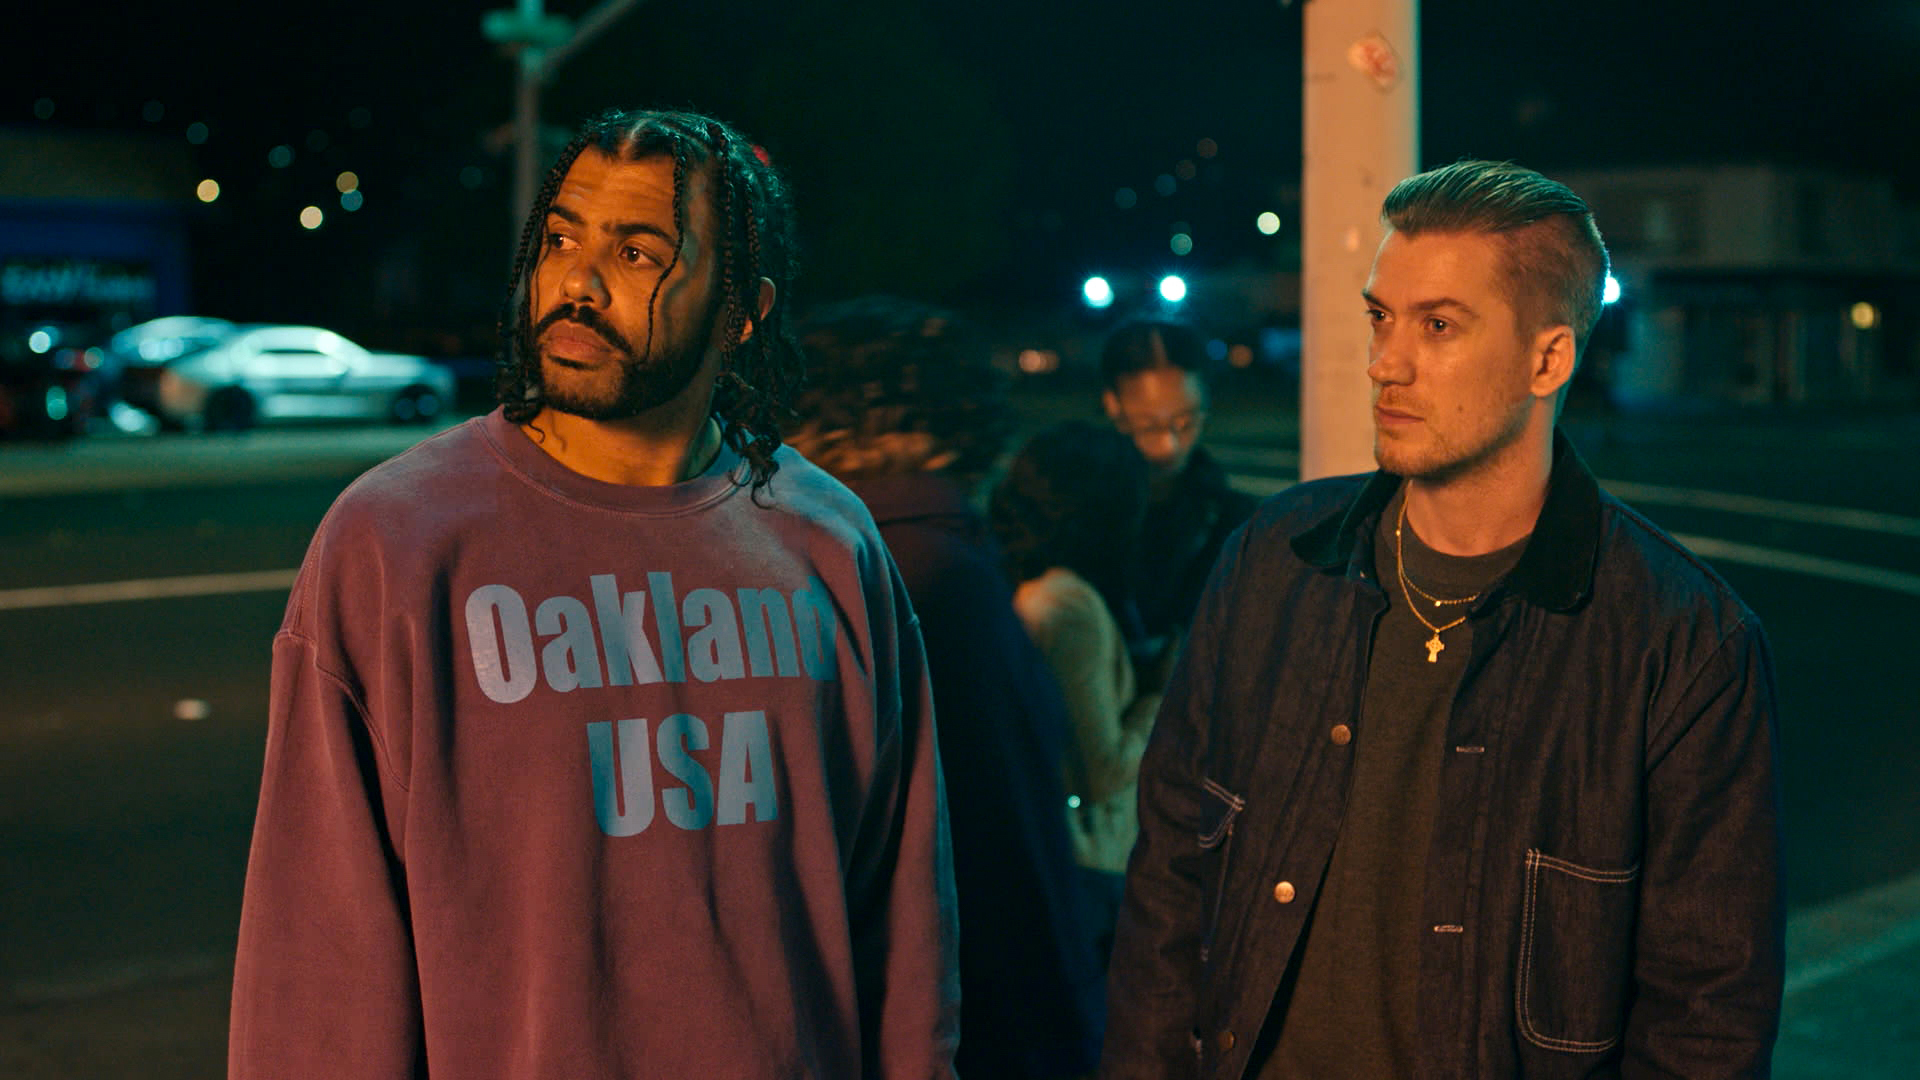 """(Lionsgate via Associated Press) Rafael Casal, right, and Daveed Diggs in a scene from """"Blindspotting,"""" in theaters on July 27."""